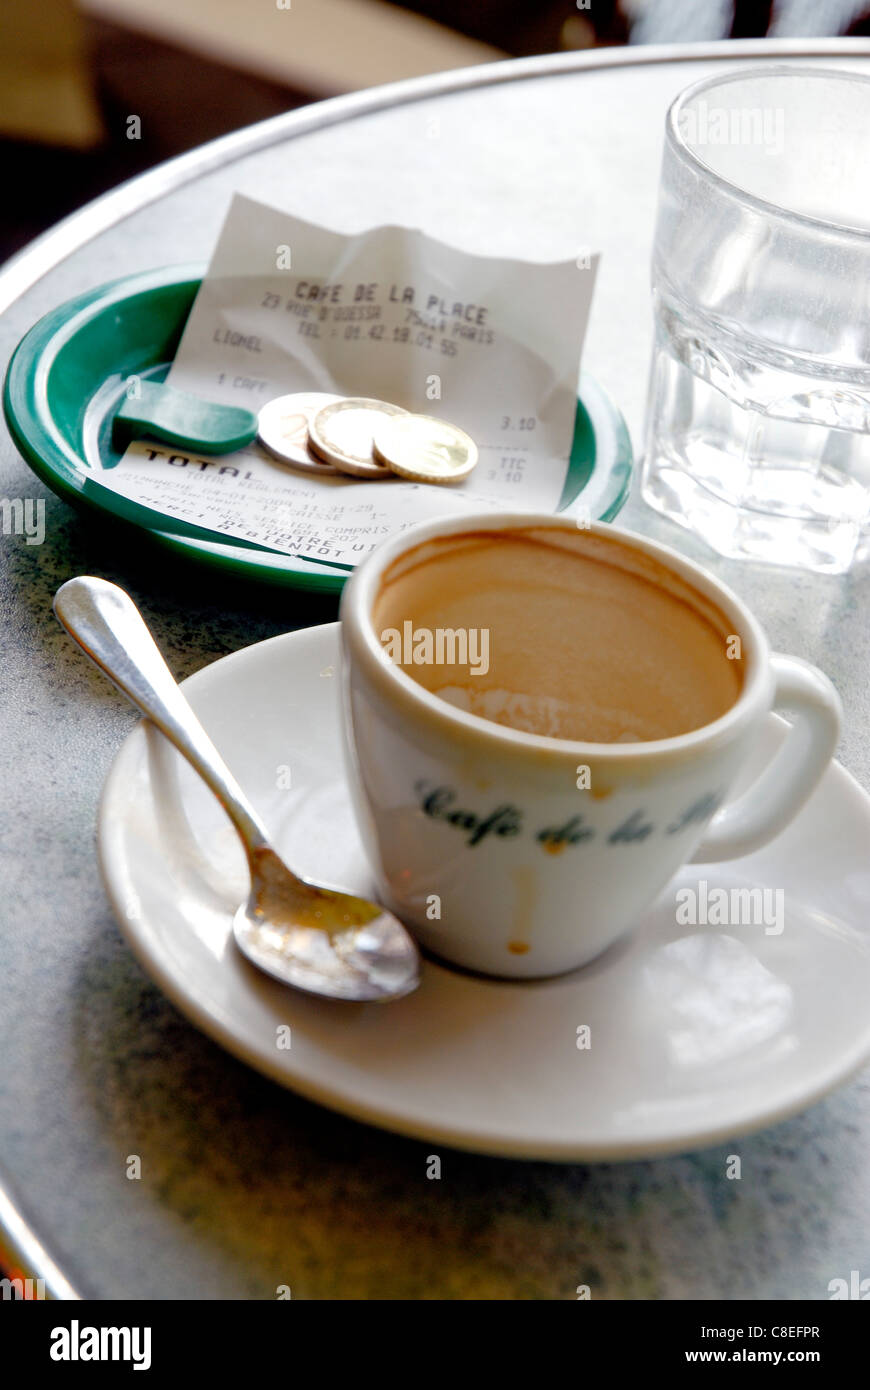 Finished coffee cup,bill and change at the terrace of a Bistrot - Stock Image